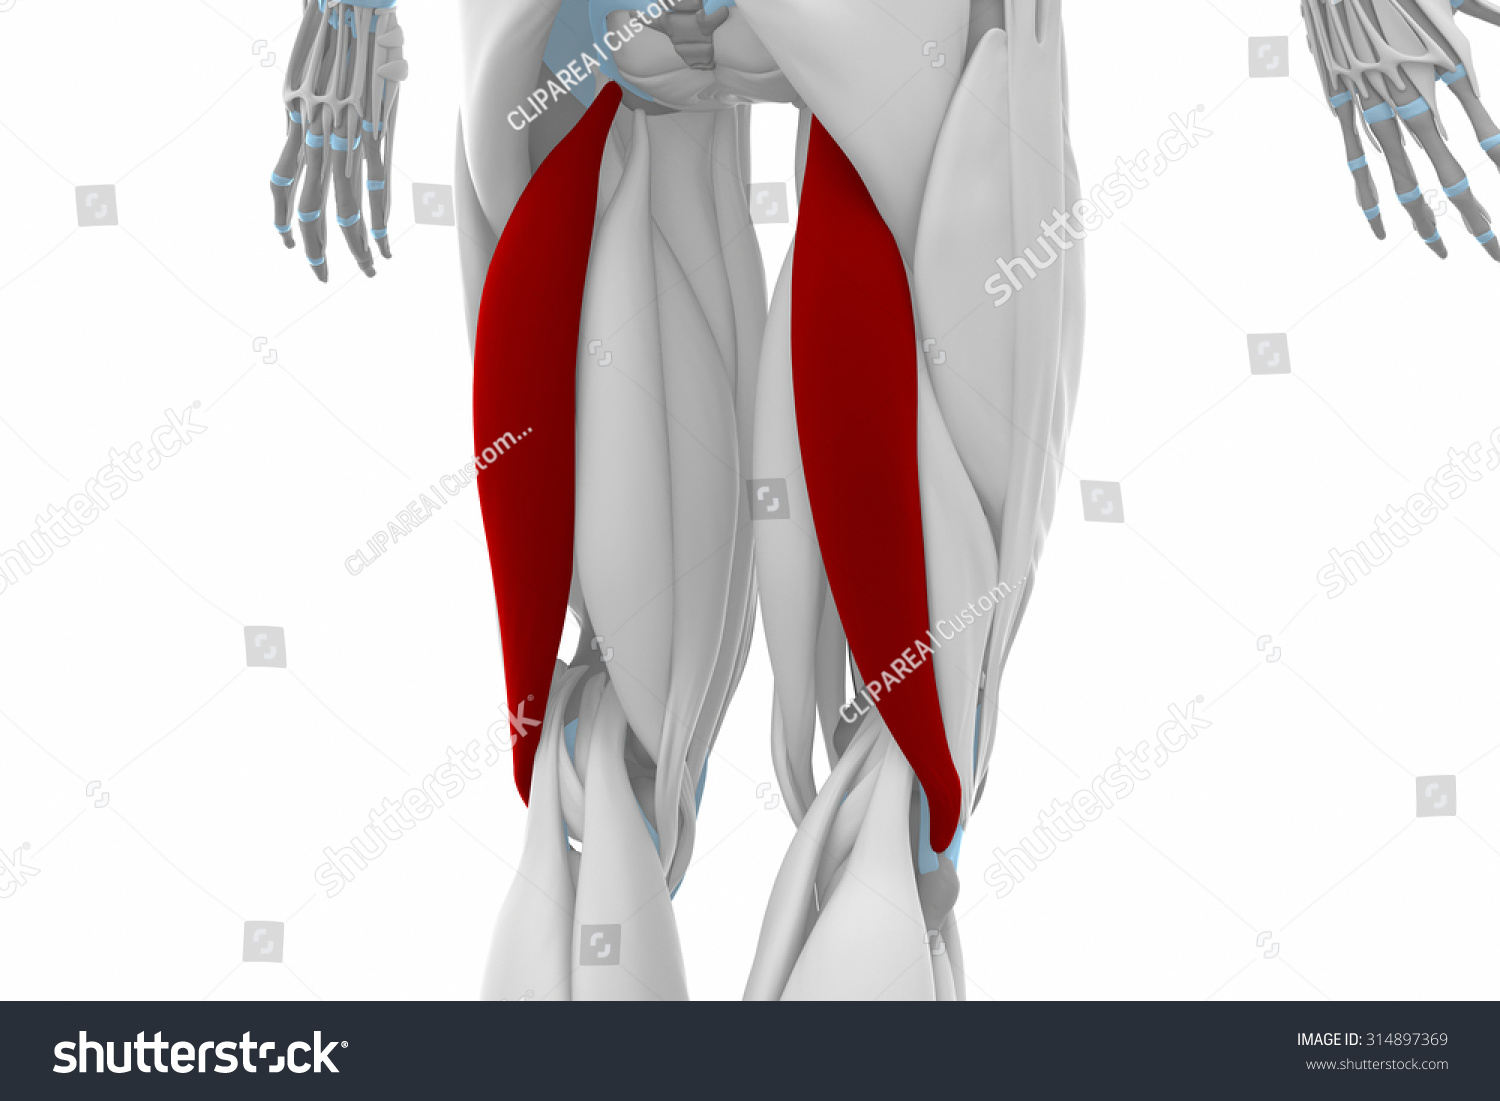 Biceps Femoris Muscles Anatomy Map Stockillustration 314897369 ...